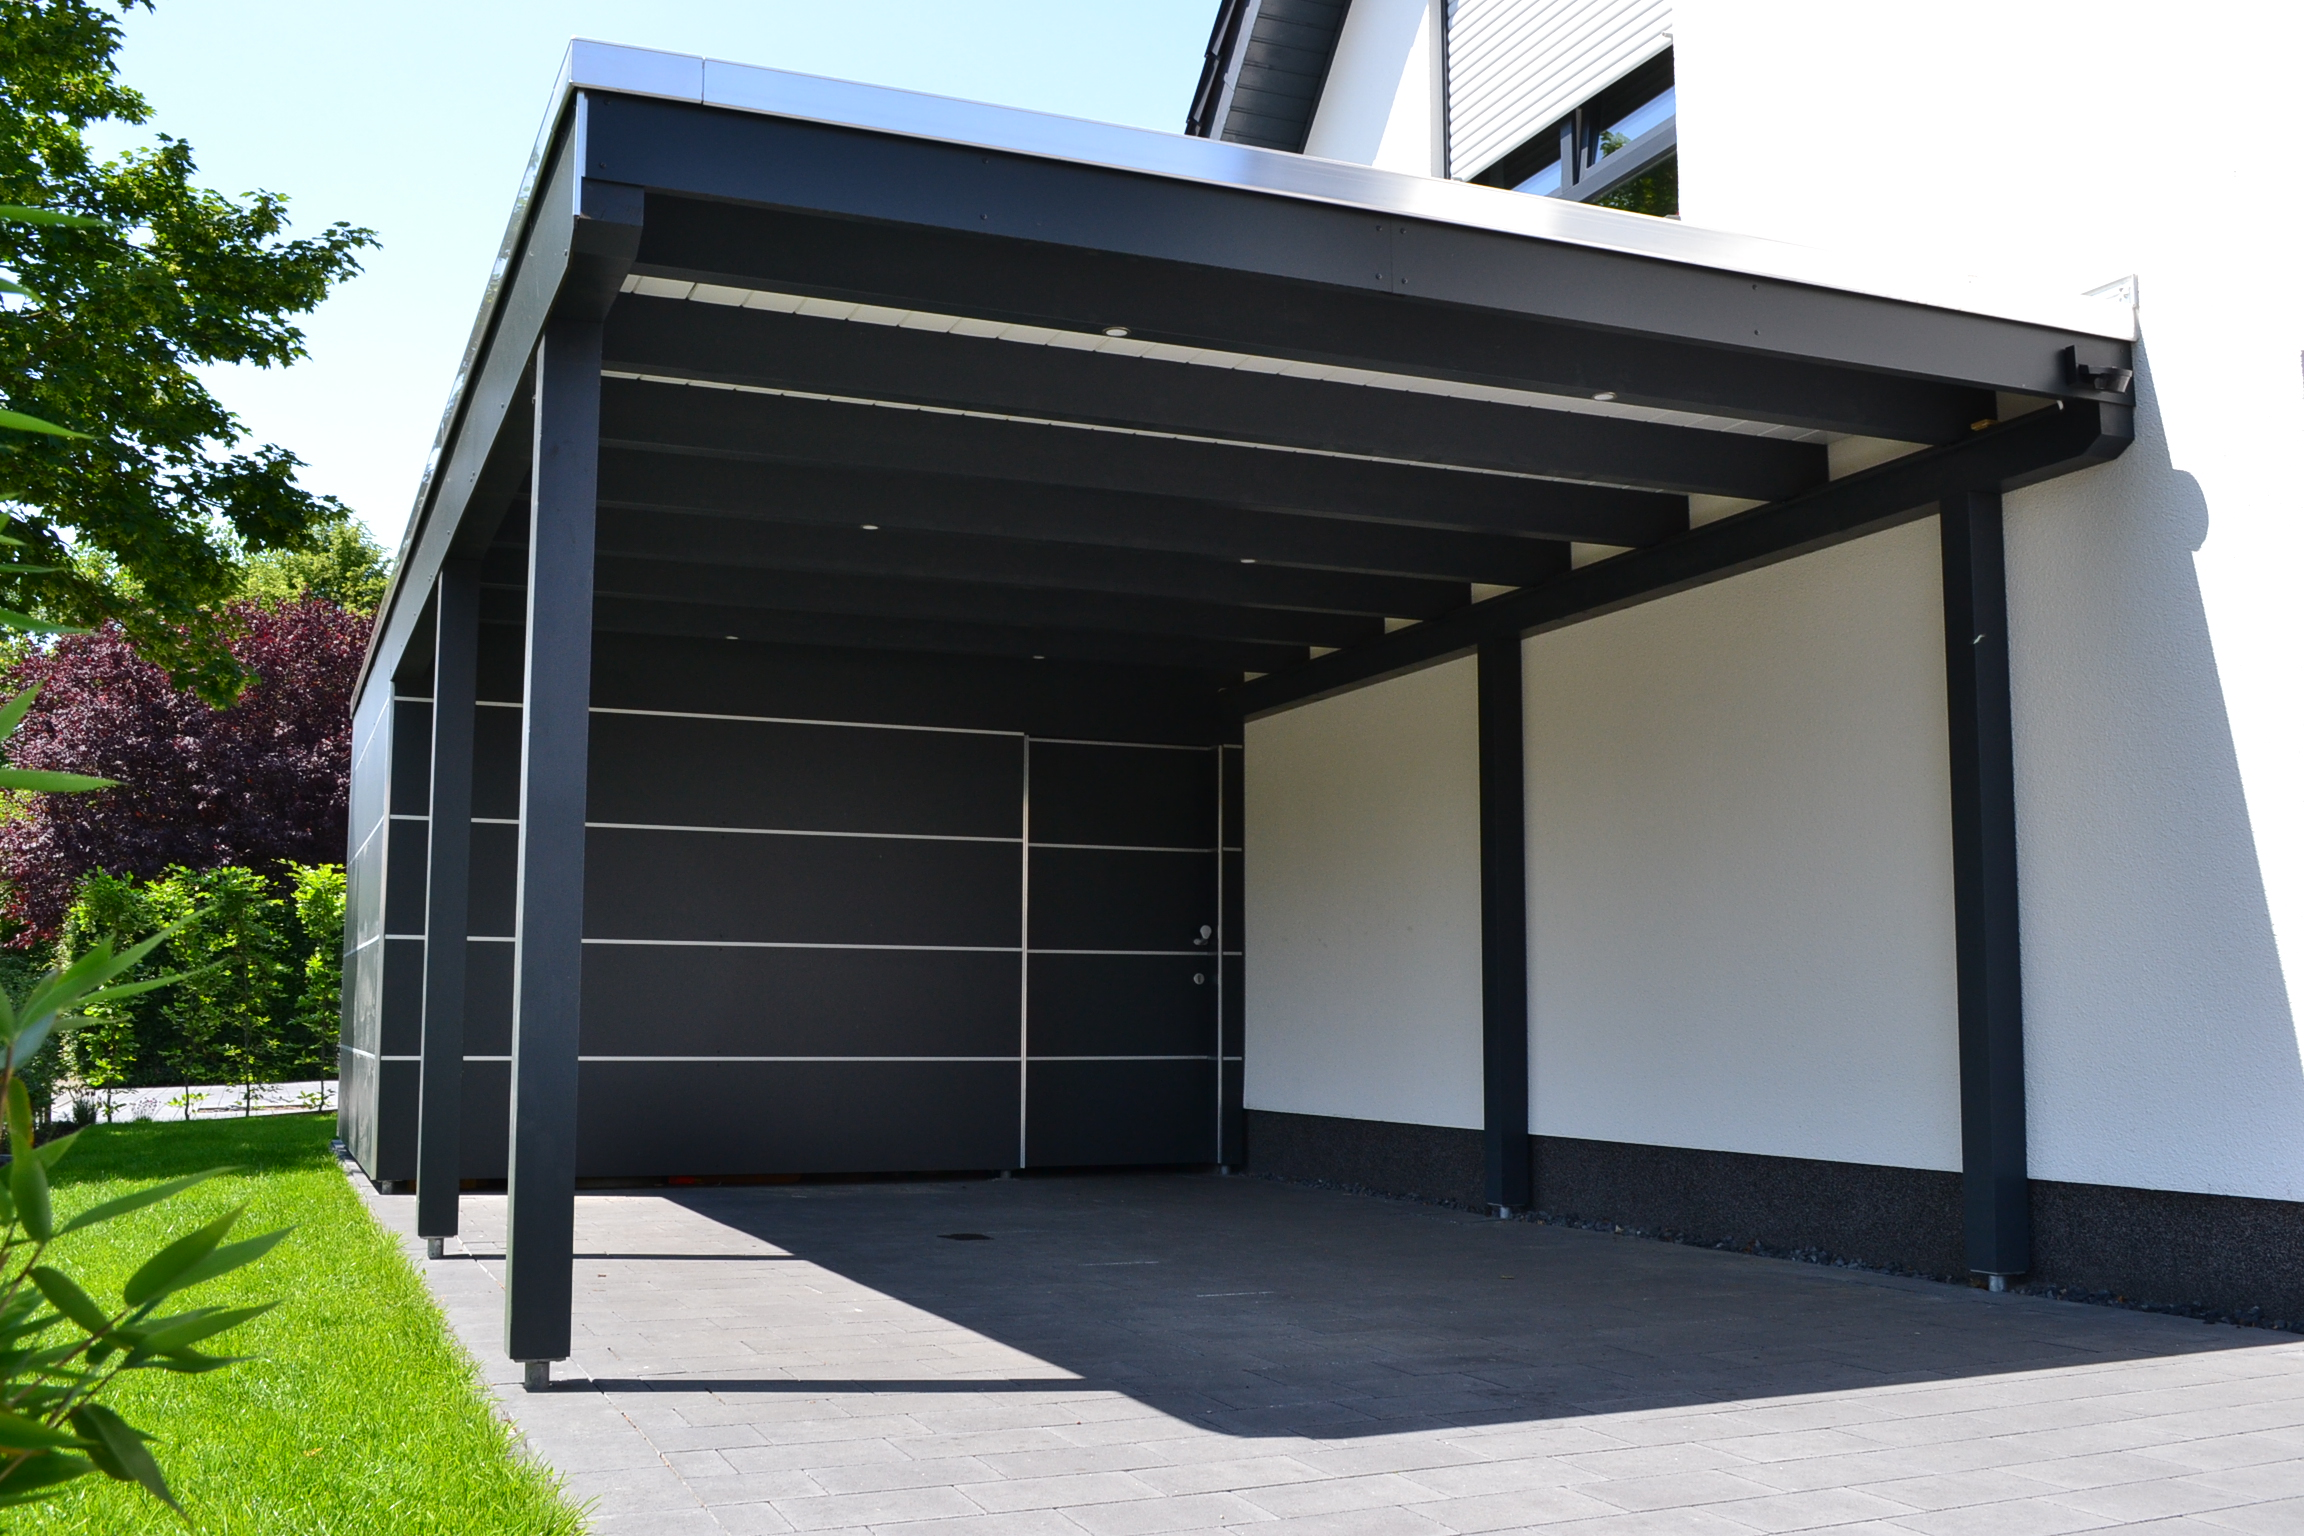 flachdachcarport mit 8mm trespa platten und abstellraum in verl pollmeier holzbau gmbh. Black Bedroom Furniture Sets. Home Design Ideas